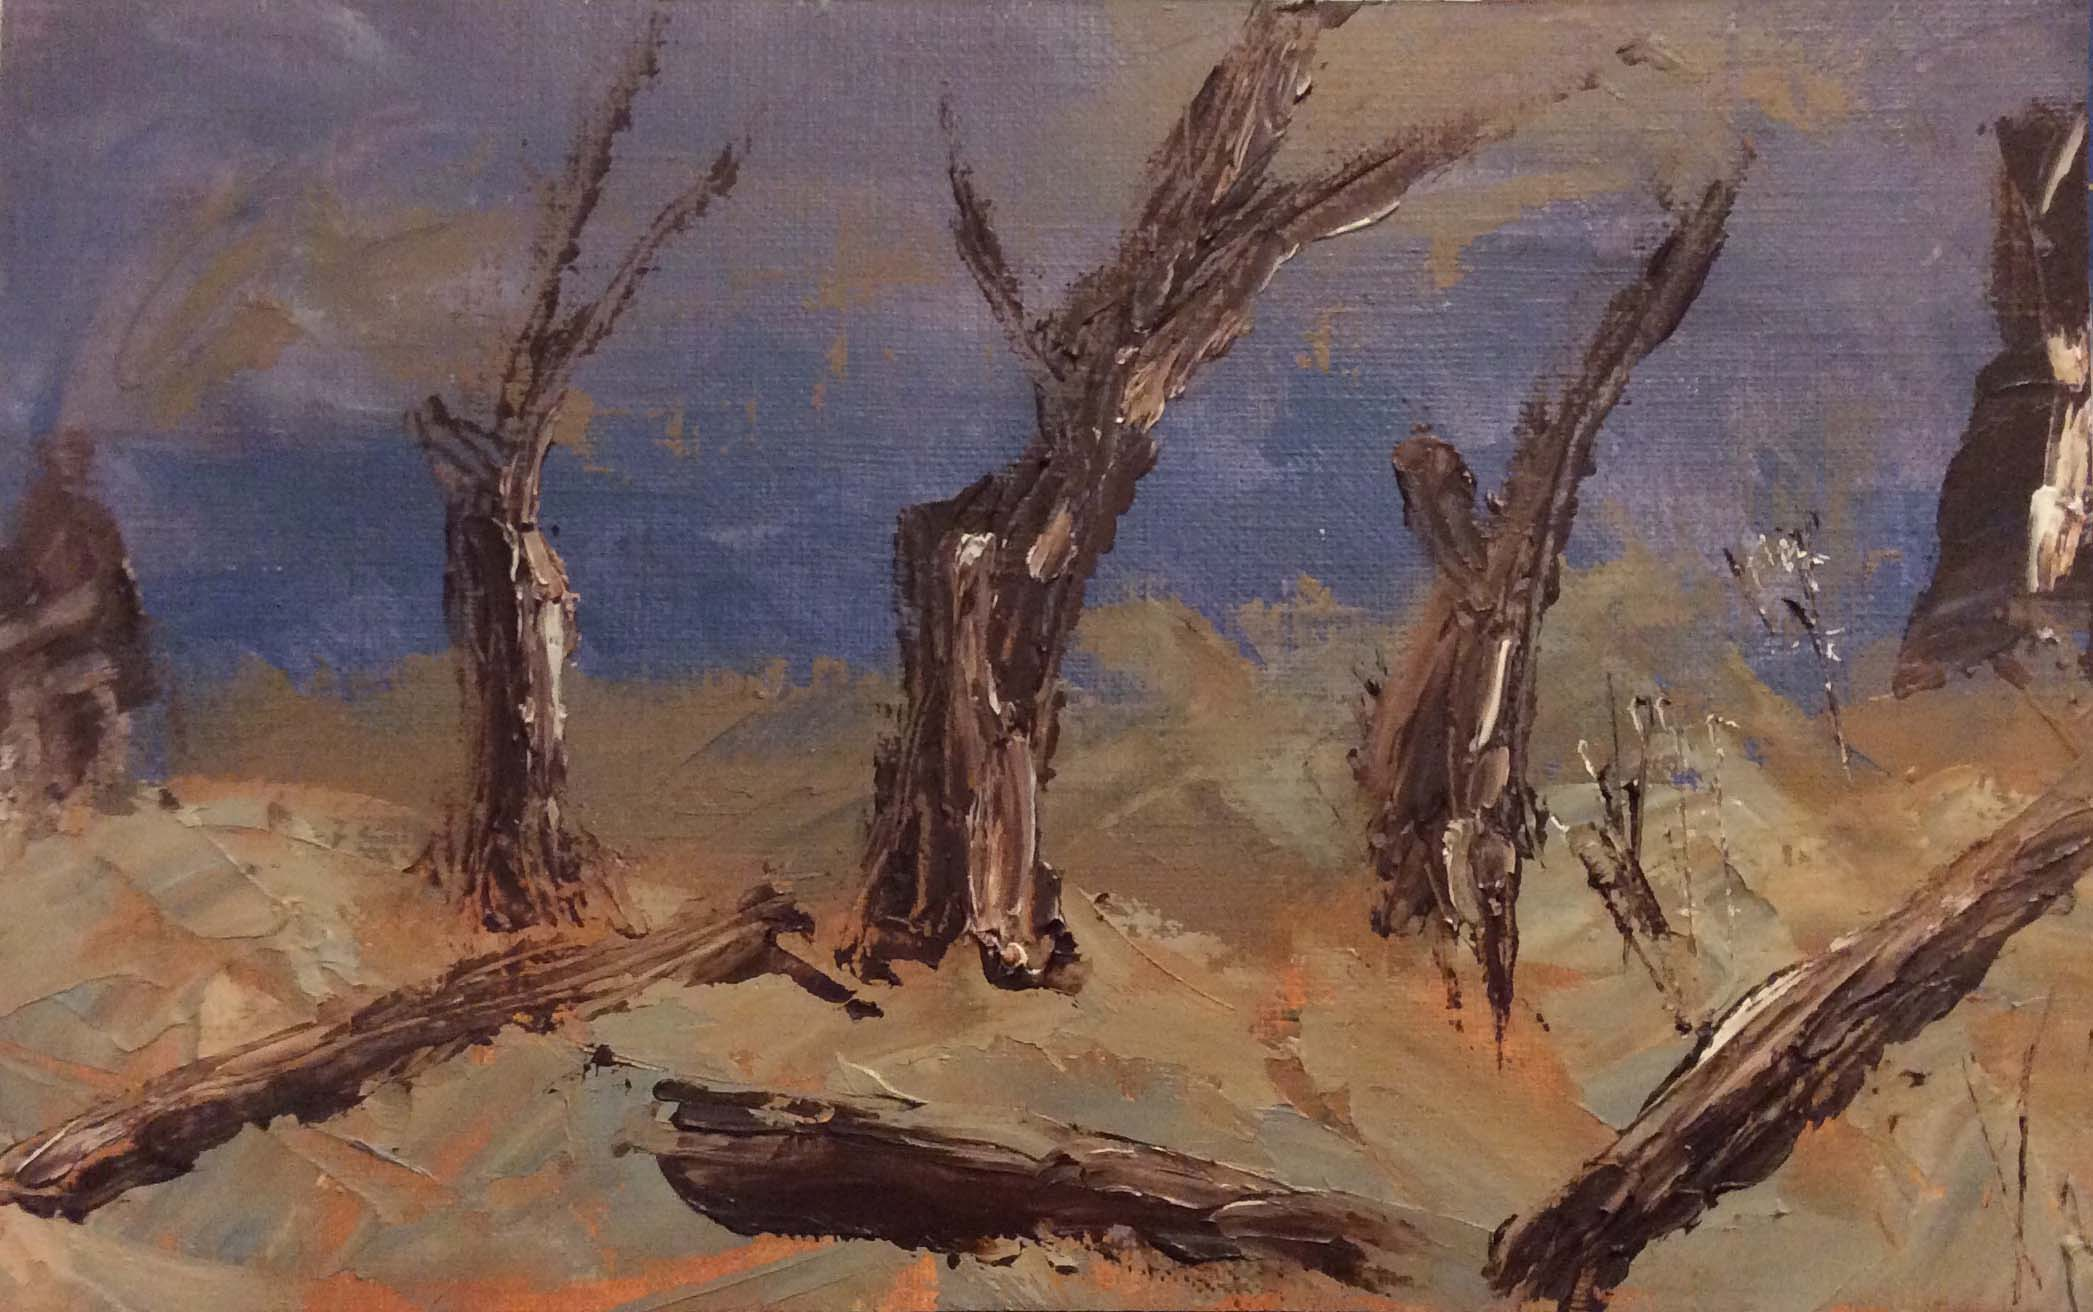 Cottonwoods. Oil paint & Cold wax. 5 x 8 inches on canvas paper.